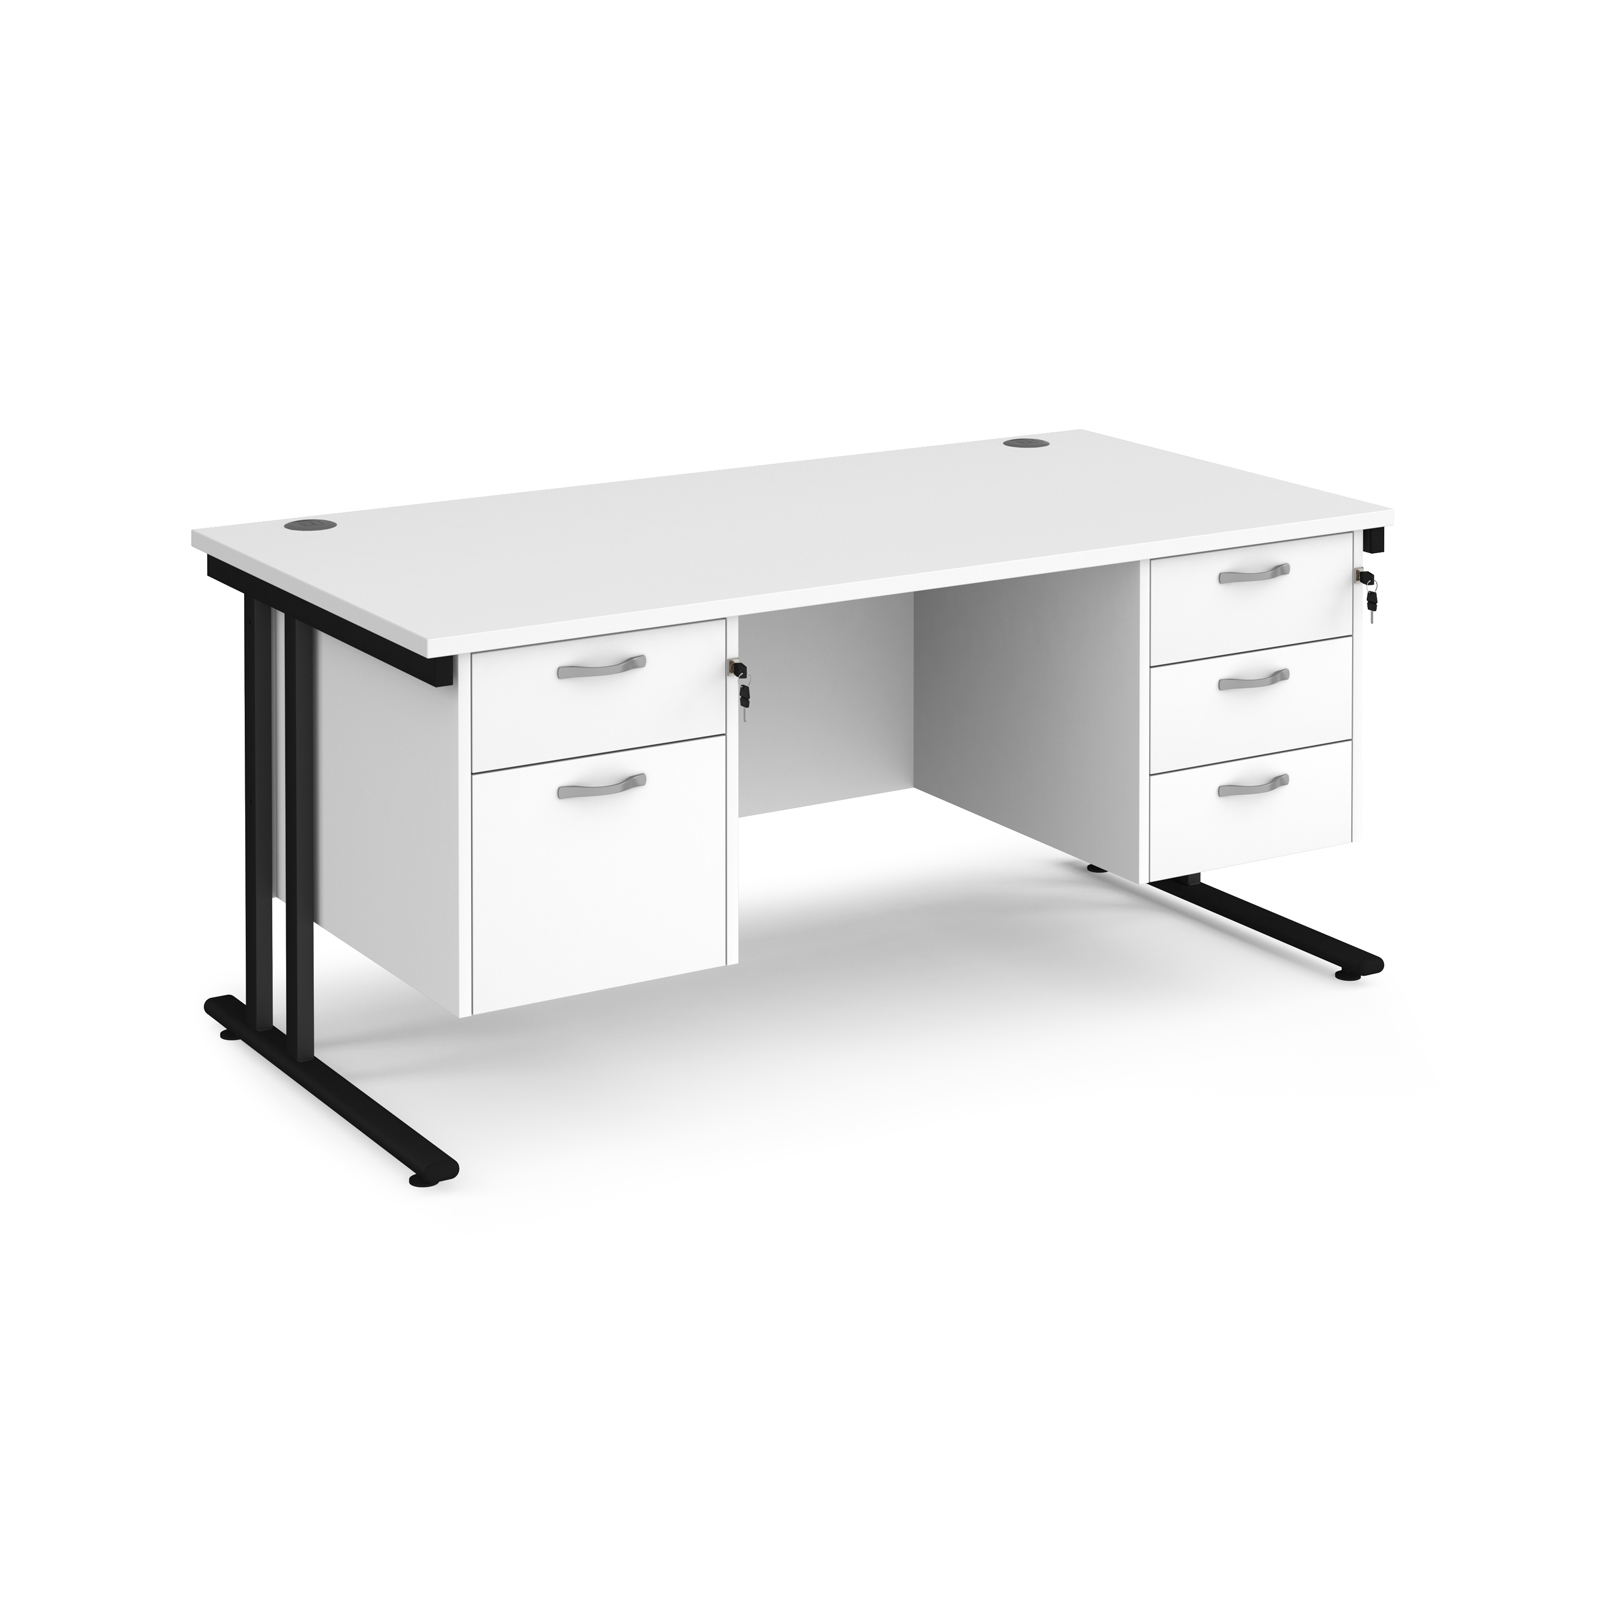 Maestro 25 straight desk 1600mm x 800mm with 2 and 3 drawer pedestals - black cantilever leg frame, white top